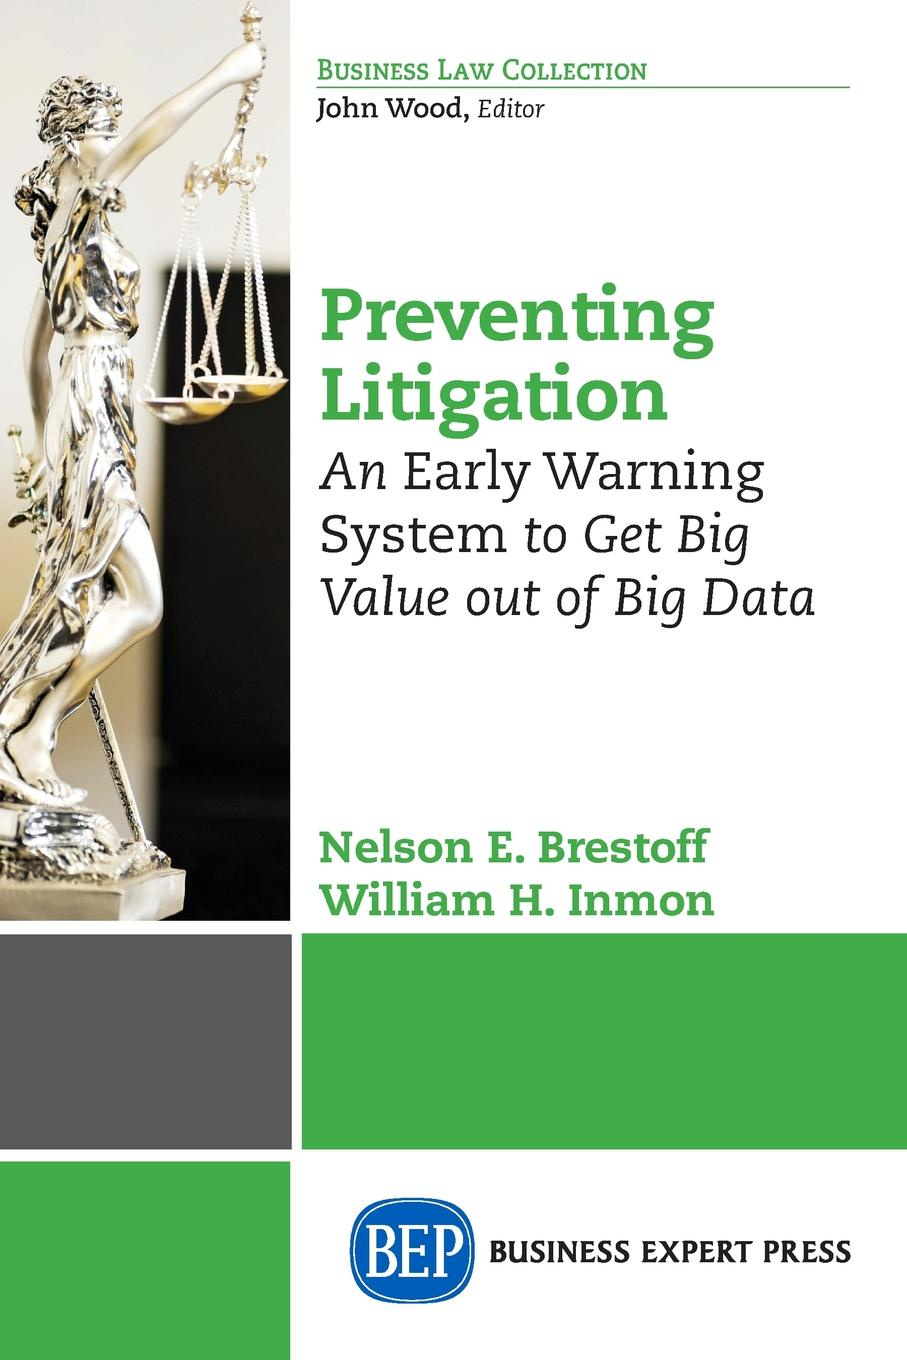 Nelson E. Brestoff, William H. Inmon Preventing Litigation. An Early Warning System to Get Big Value Out of Big Data the eye of the world the wheel of time book 2 chinese edition 400 page